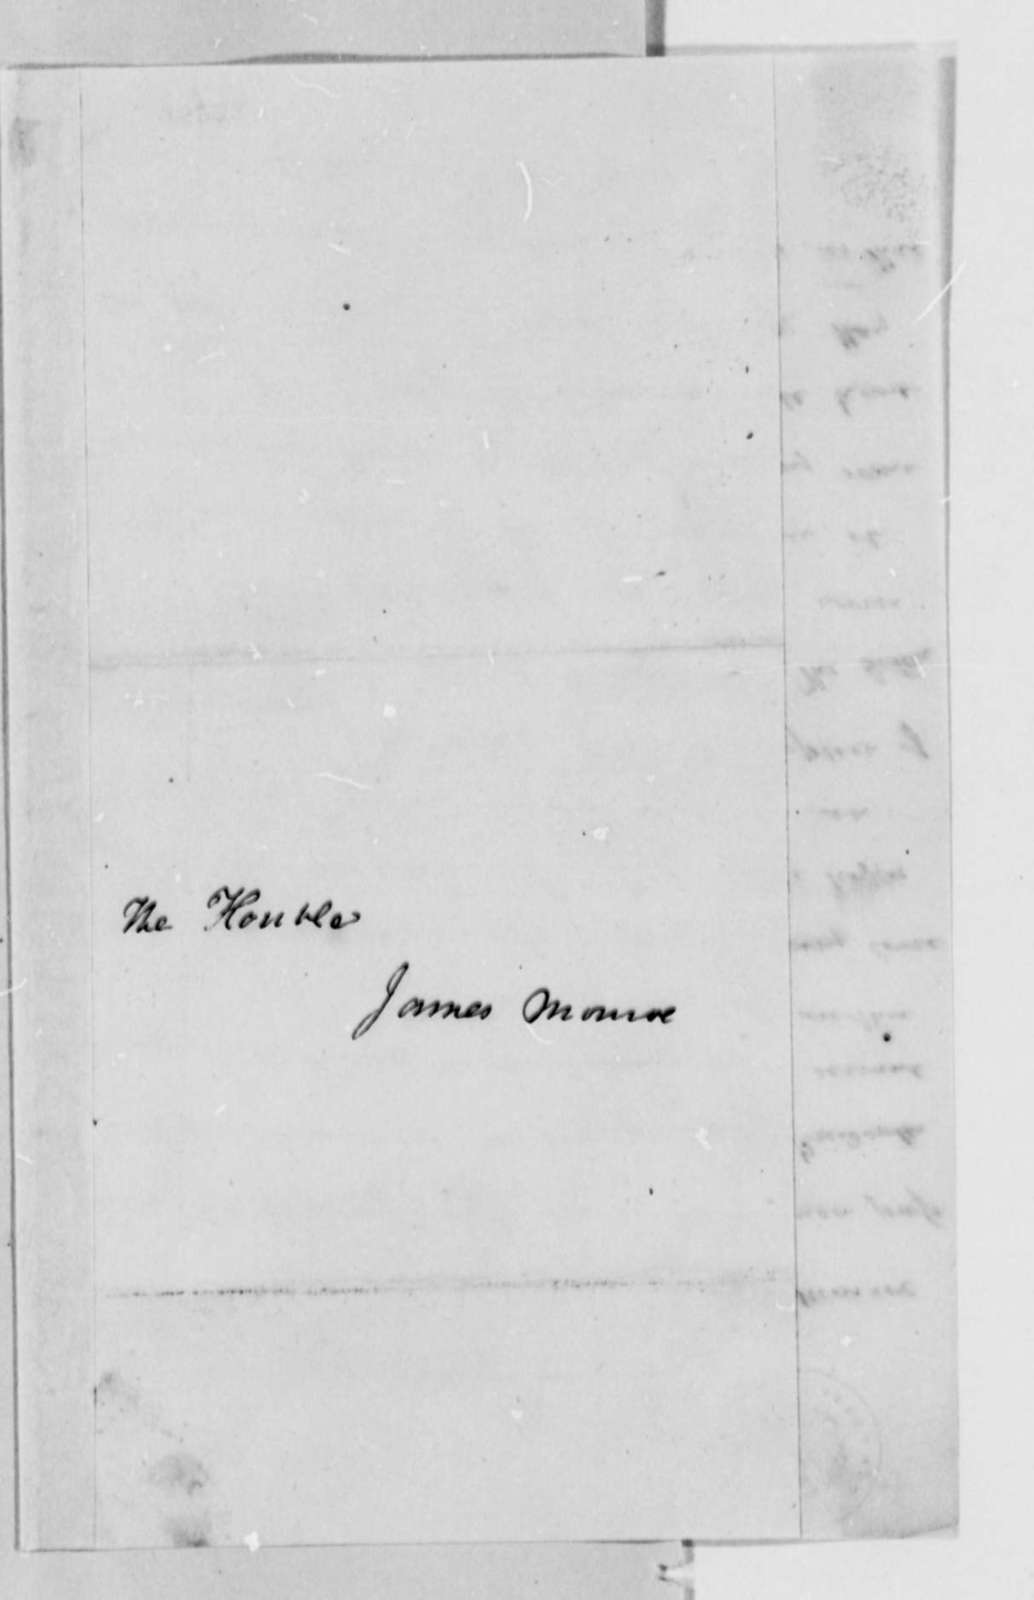 George Poindexter to James Monroe, May 20, 1813